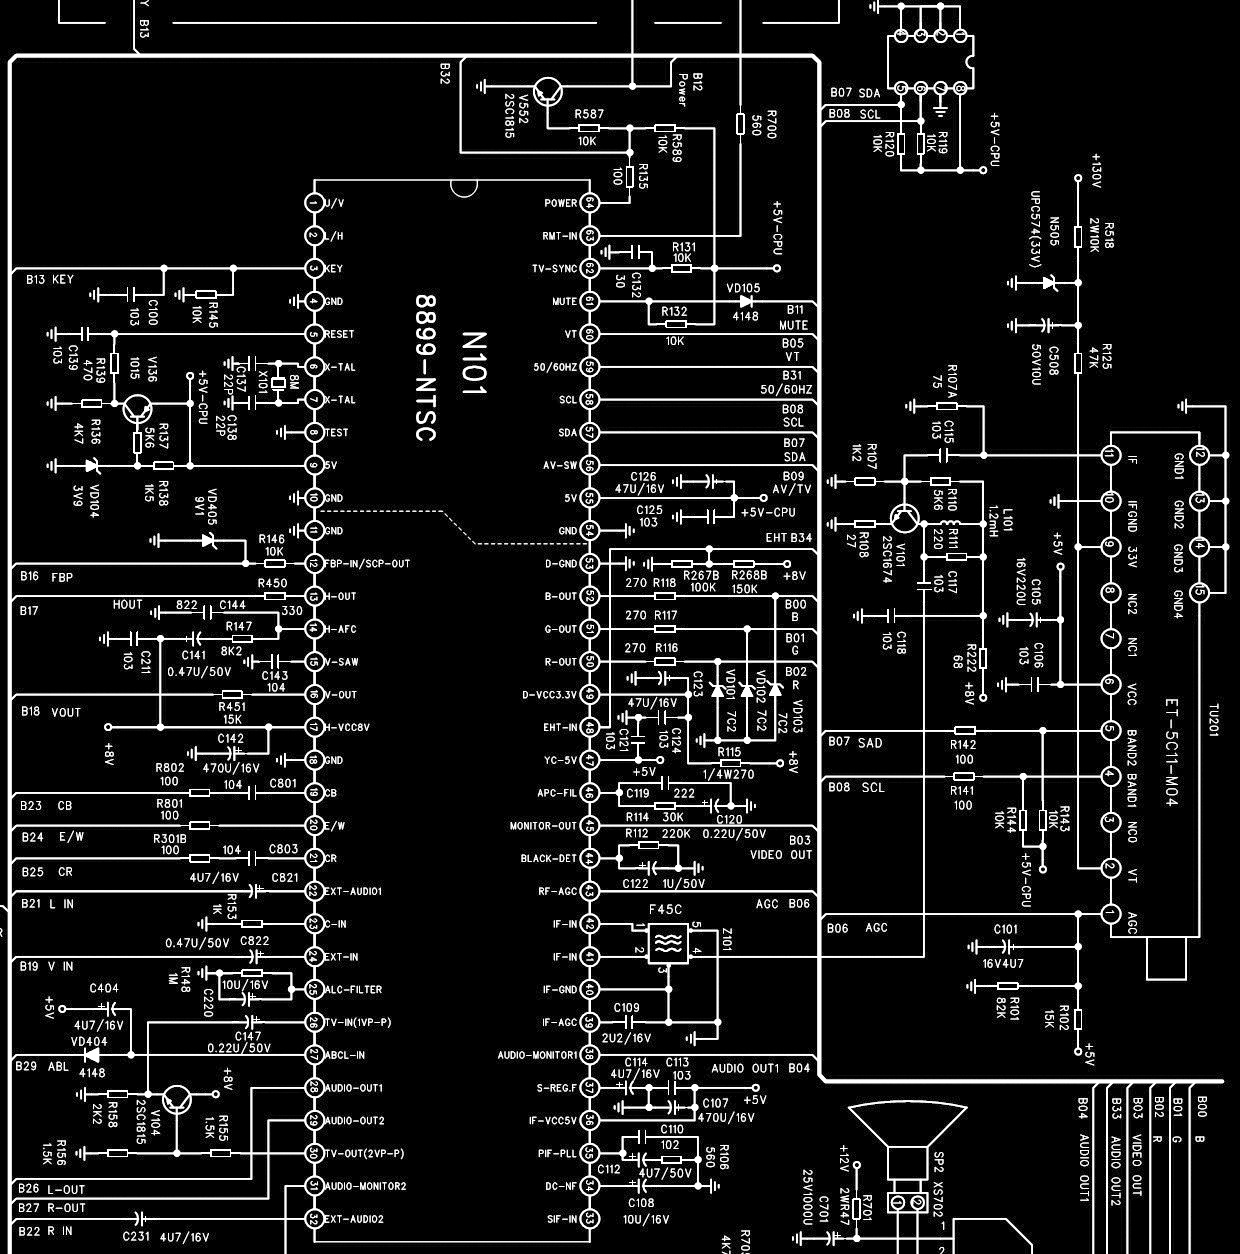 Parker Tu2191 - Ultraslim Crt Tv - Full Circuit Diagram